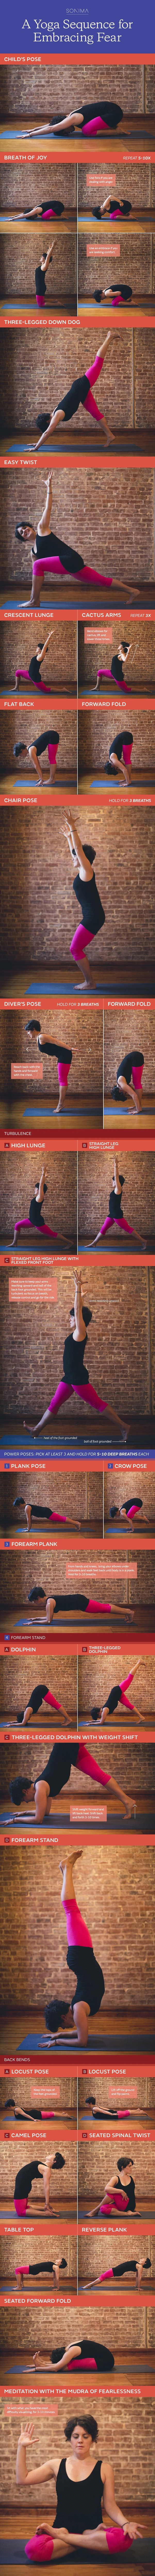 Enjoy this short energetic yoga for fear sequence to lift you up when you have to face your fears and confront a challenge, designed by Mary Dana Abbott.